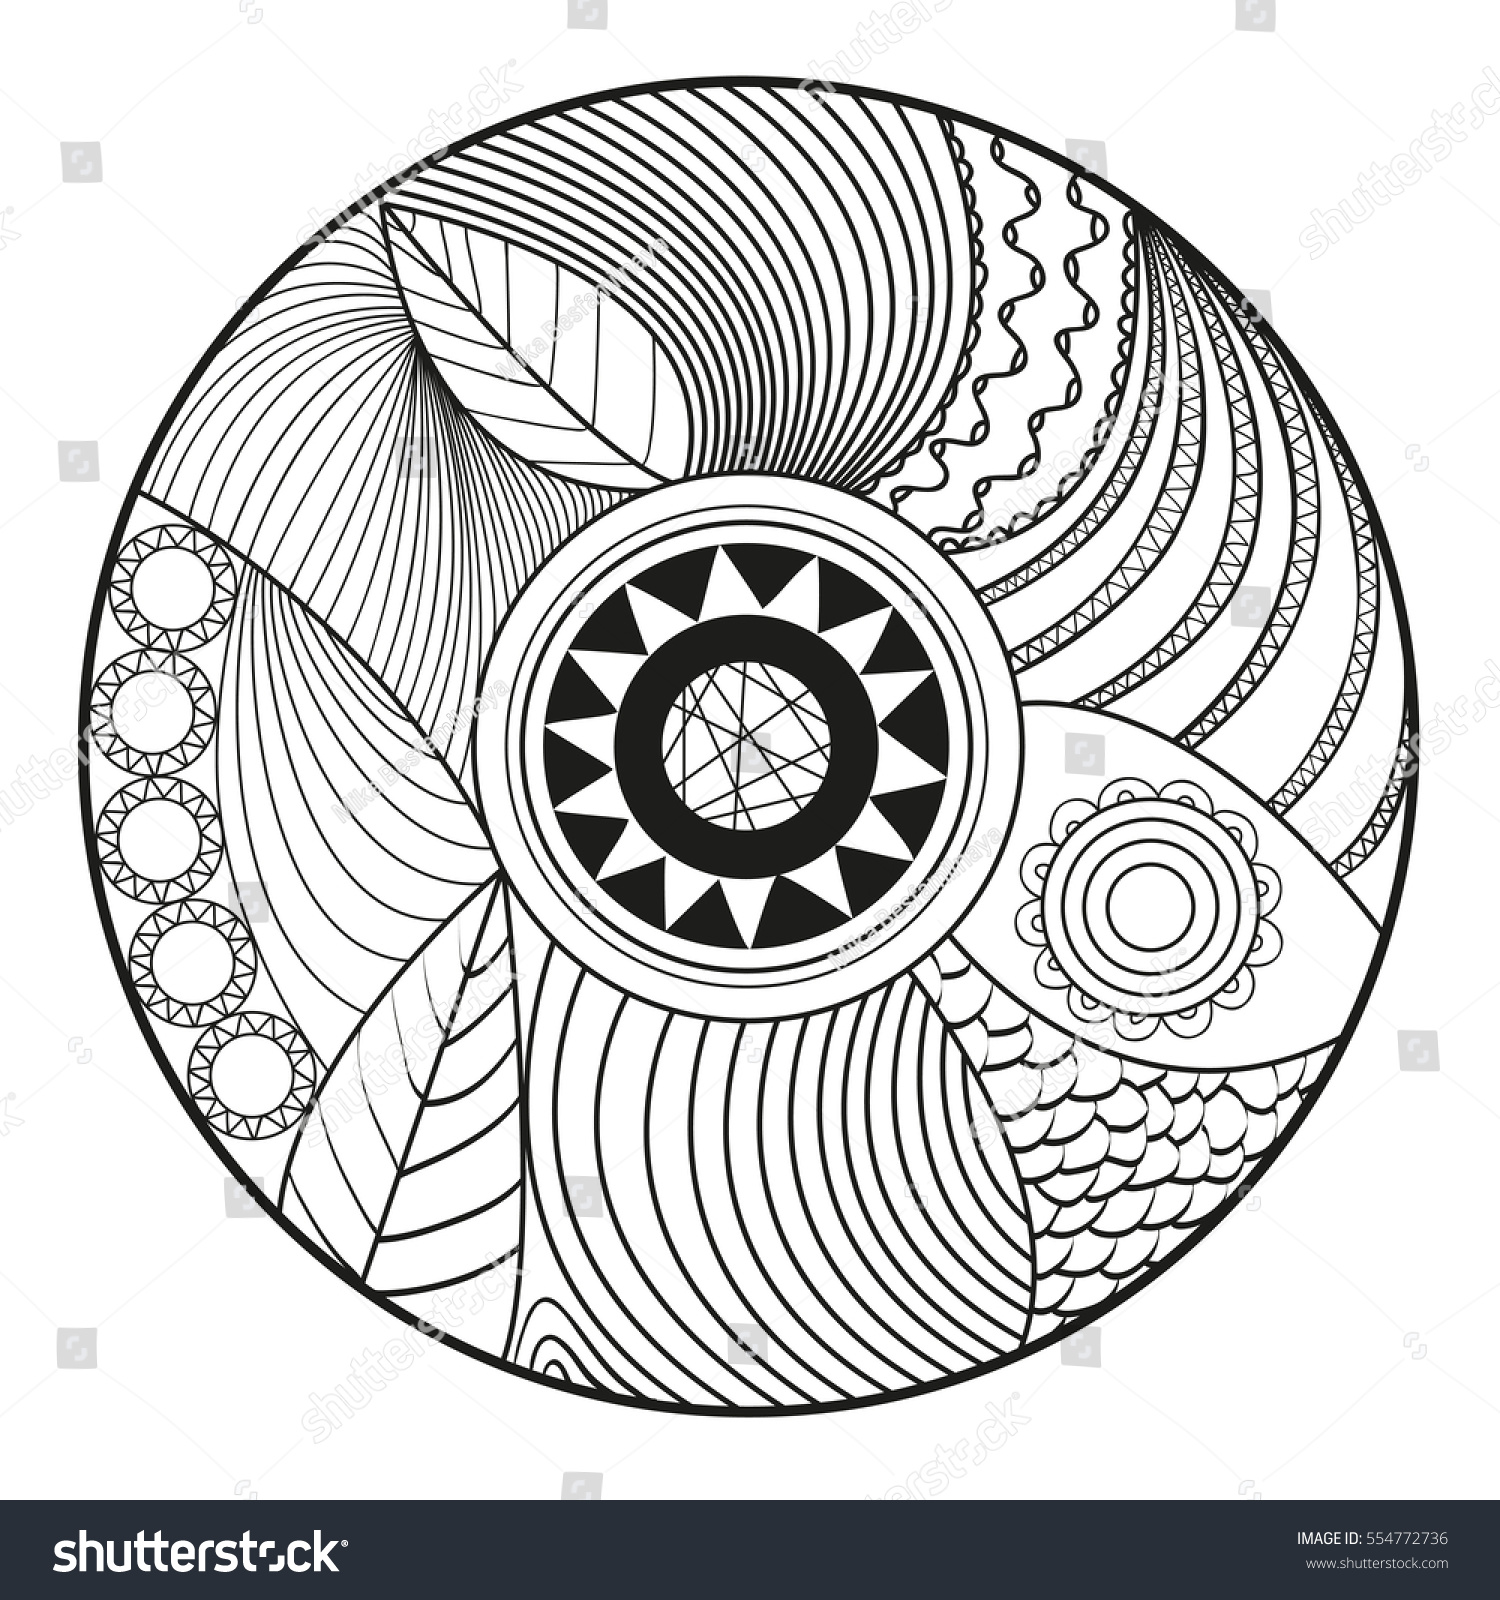 circle abstract coloring pages - photo#25